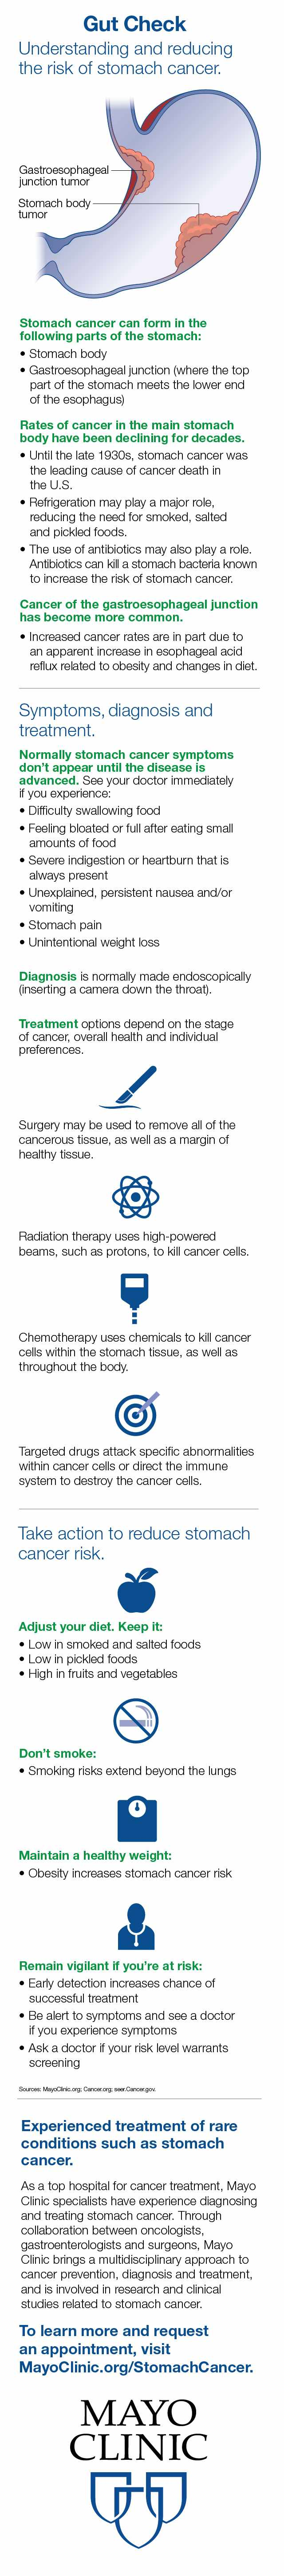 Infographic for stomach cancer risks, gut check